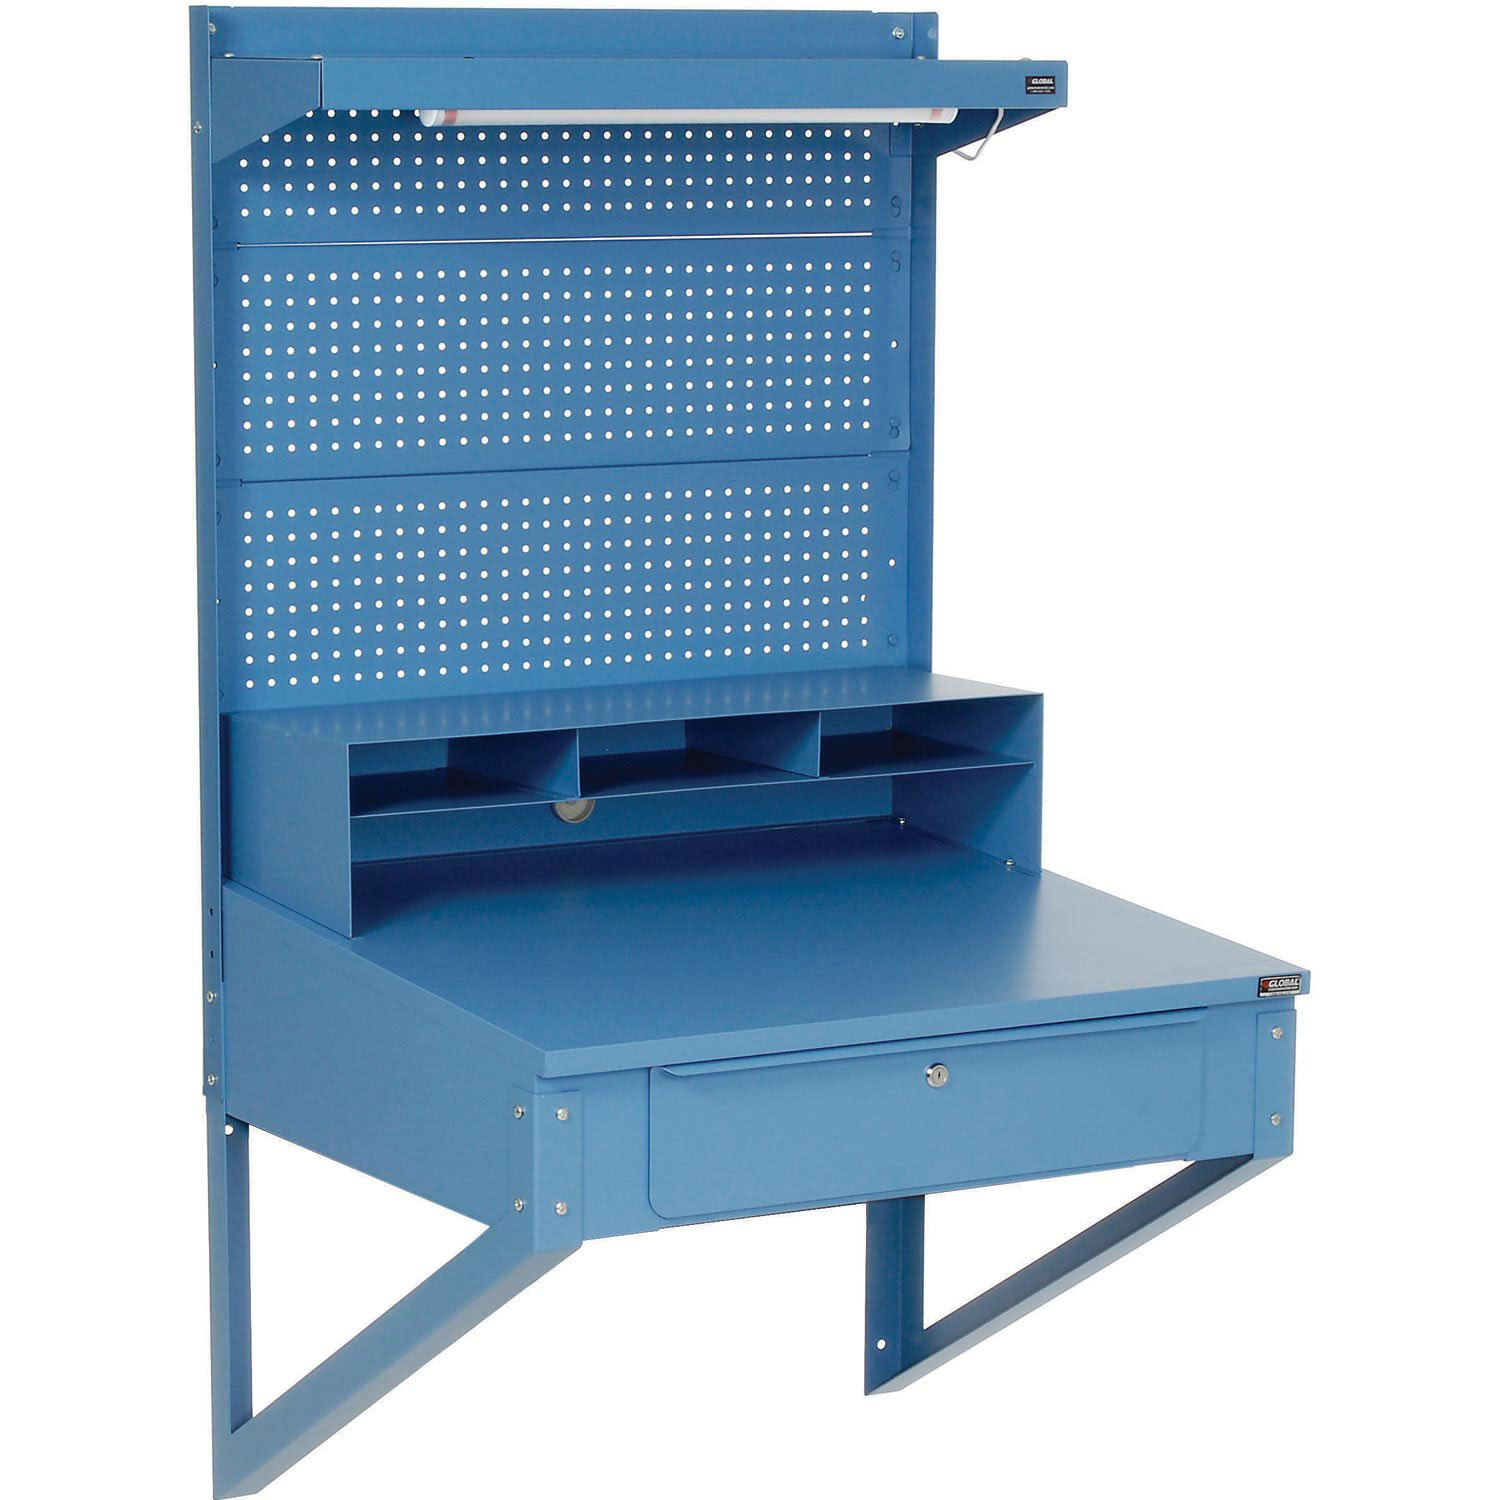 Shop Desk Wall Mount with Pegboard Riser, 34-1/2''W x 30''D x 61''H, Blue